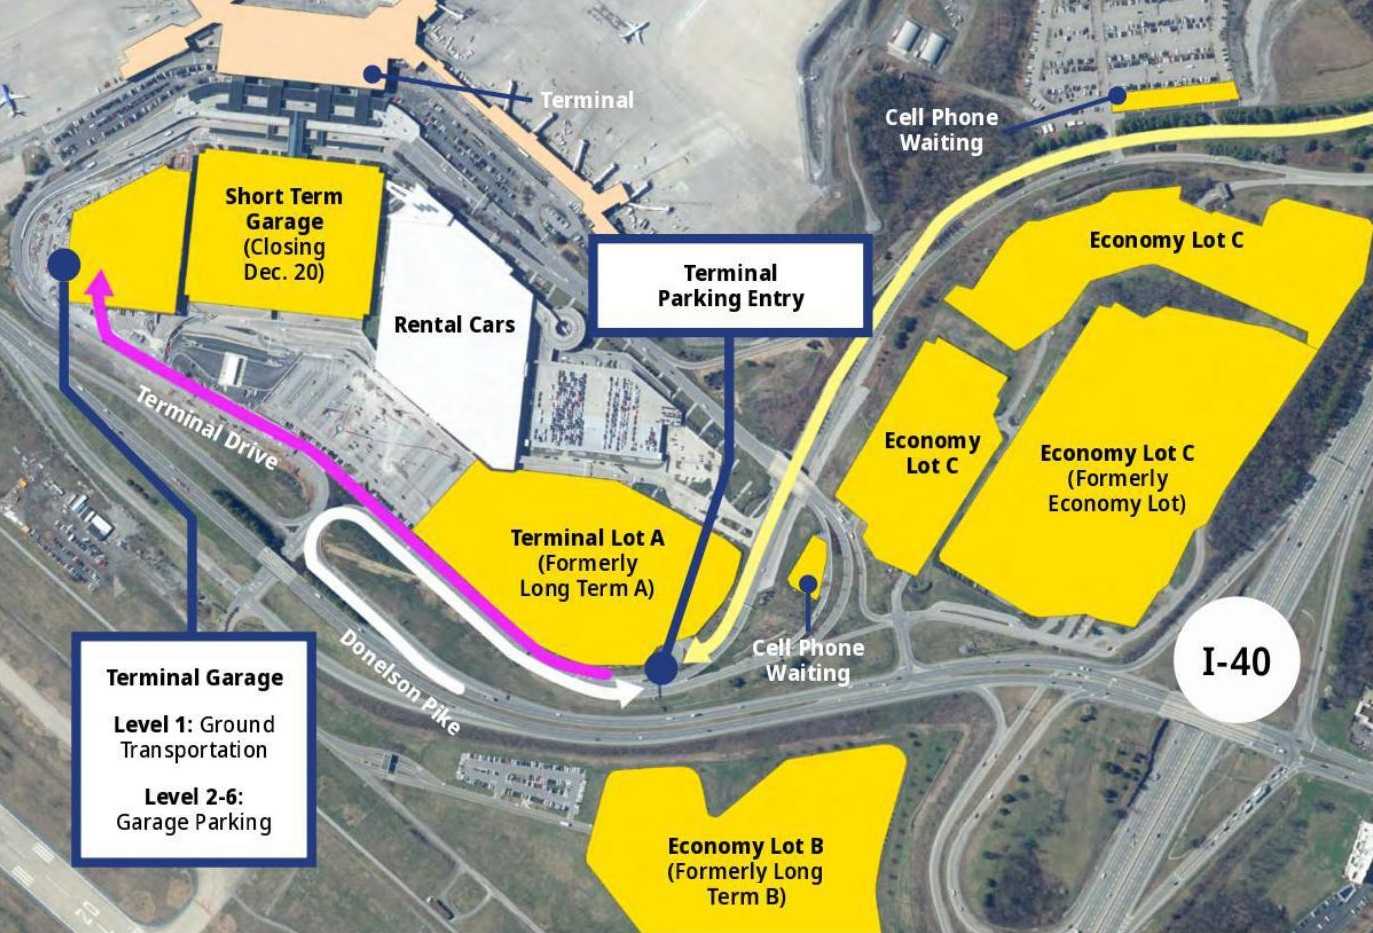 Important Parking Updates | BNA Vision on lincoln ne parking map, new brunswick nj parking map, tennessee parks map, nashville tn police, durham nc parking map, nashville tn tickets, nashville tn events, university of tennessee parking map, at&t stadium parking map, columbia sc parking map, university of tennessee hospital map, lancaster pa parking map, minneapolis mn parking map, downtown nashville map, nashville tn visit, knoxville tn area map, nashville tn history, savannah ga parking map, nashville tn weather, memphis tn parking map,